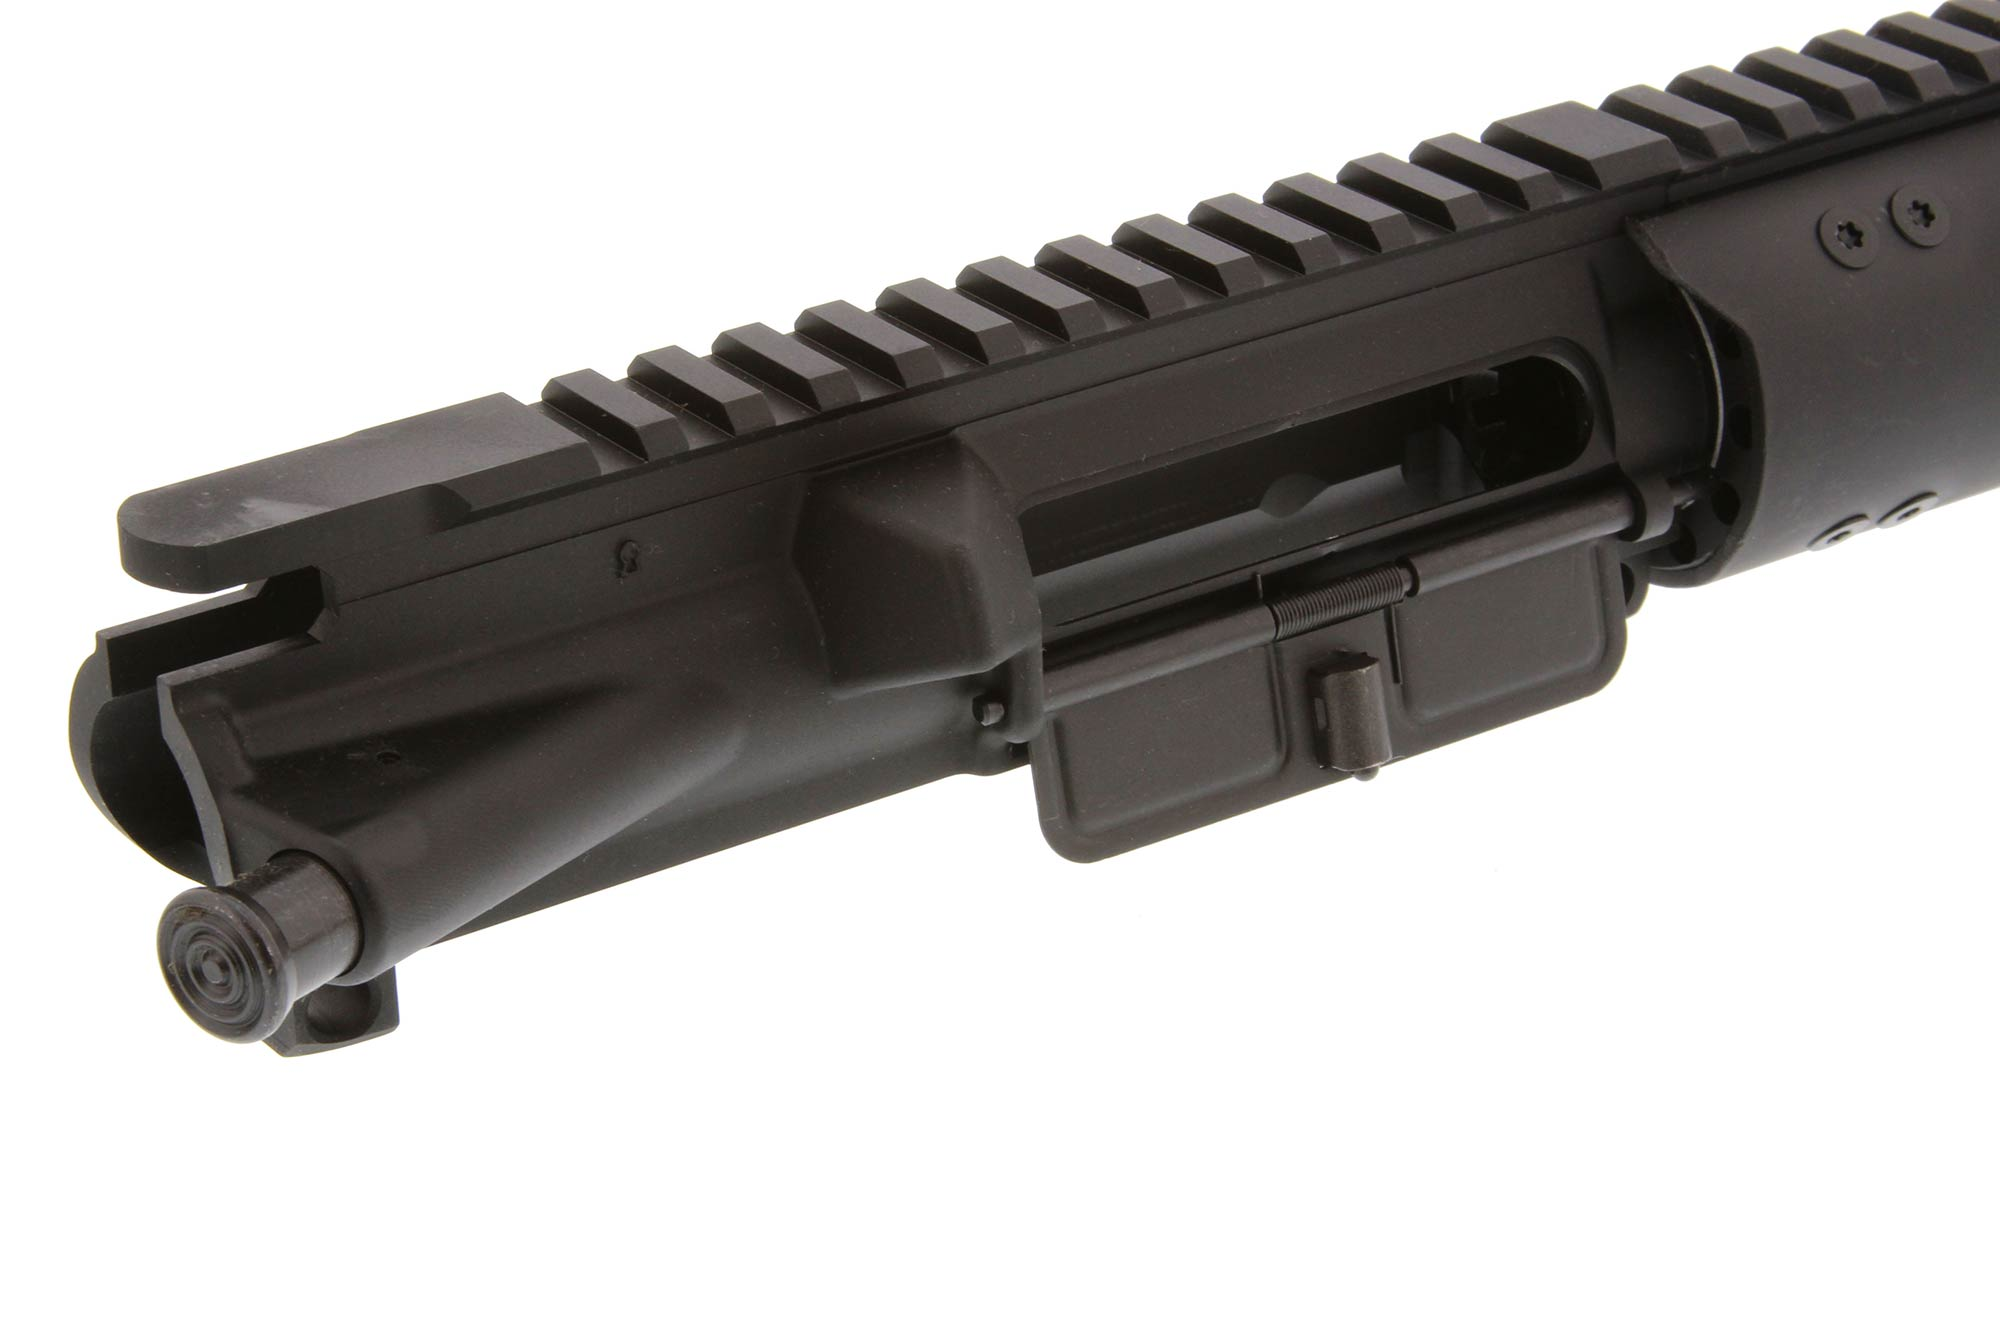 "Radical Firearms 16 5.56 NATO 1:7 Carbine Length M4 Barreled Upper - 10"" MOE FGS Rail"